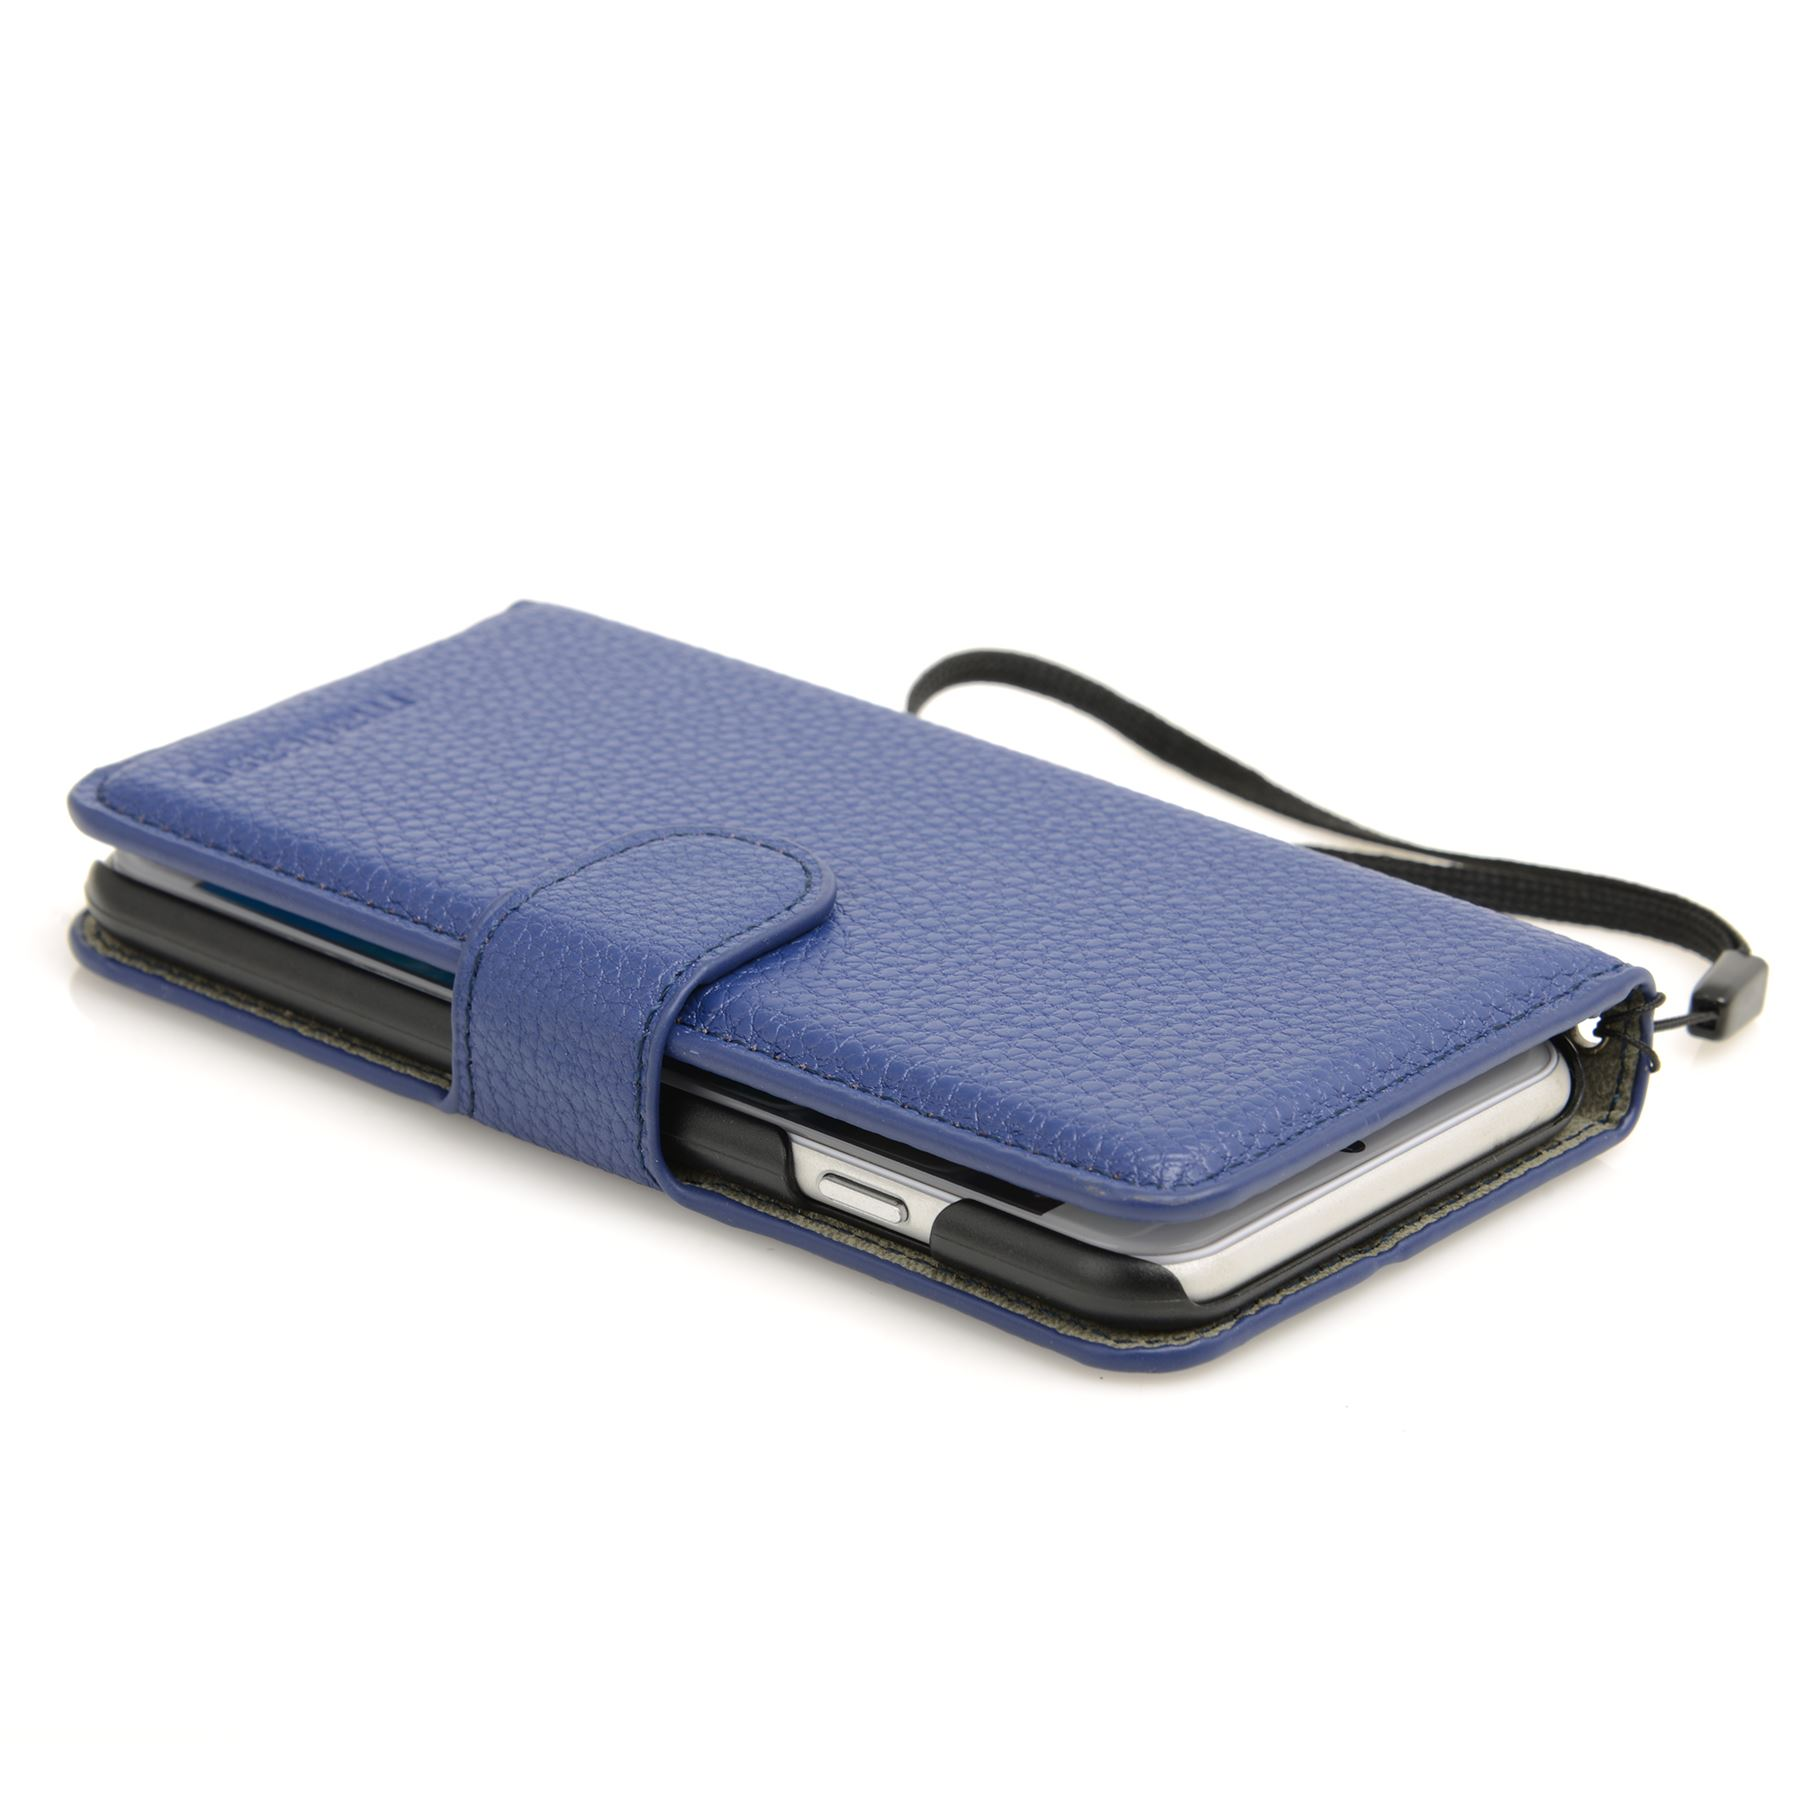 thumbnail 19 - For Apple iPhone 6s 6 Case Premium Textured Leather Wallet Madcase Cover